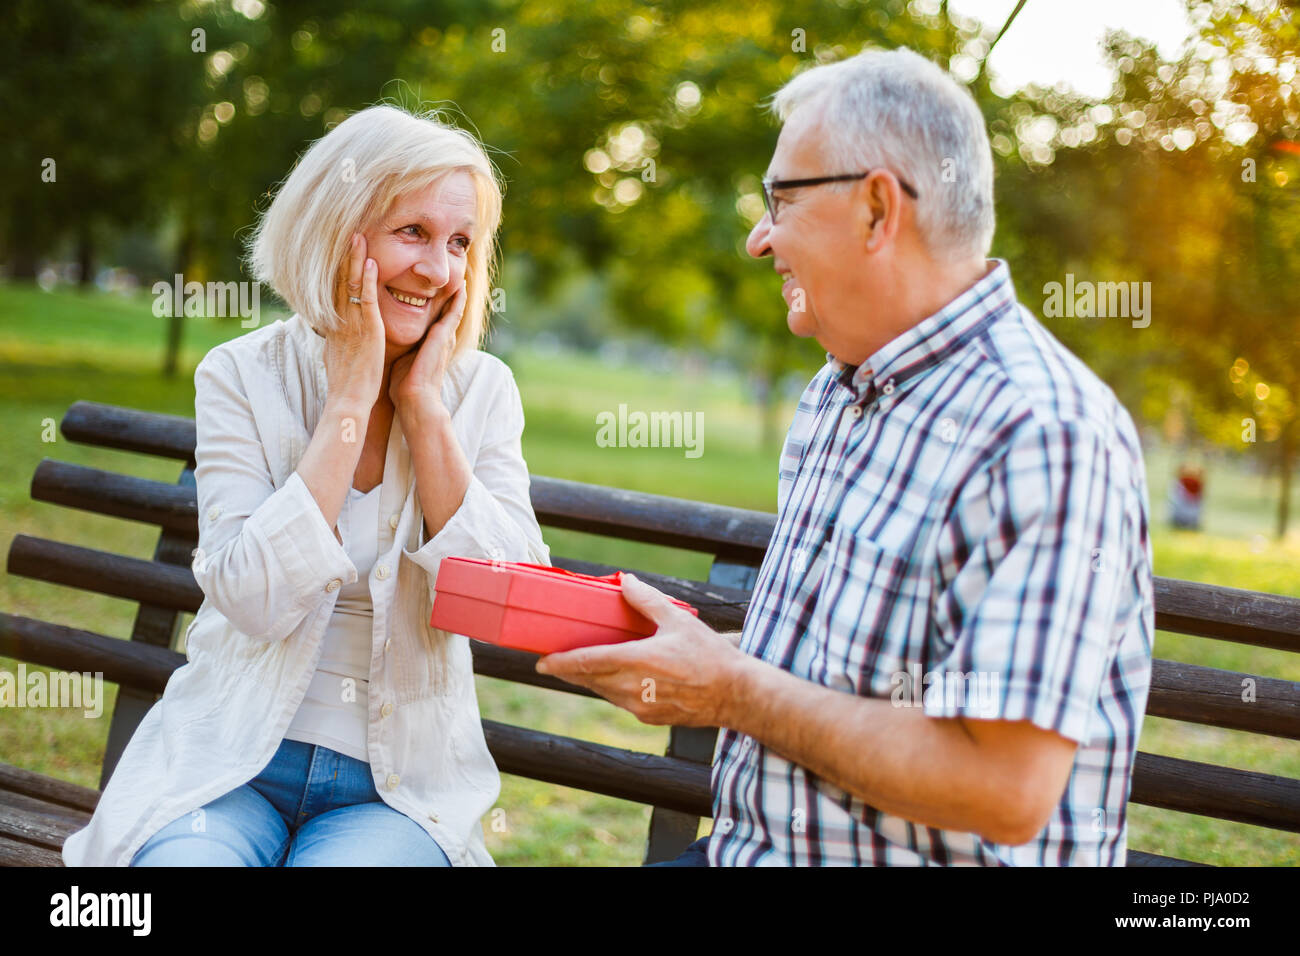 Senior woman is delighted with gift from her man. - Stock Image